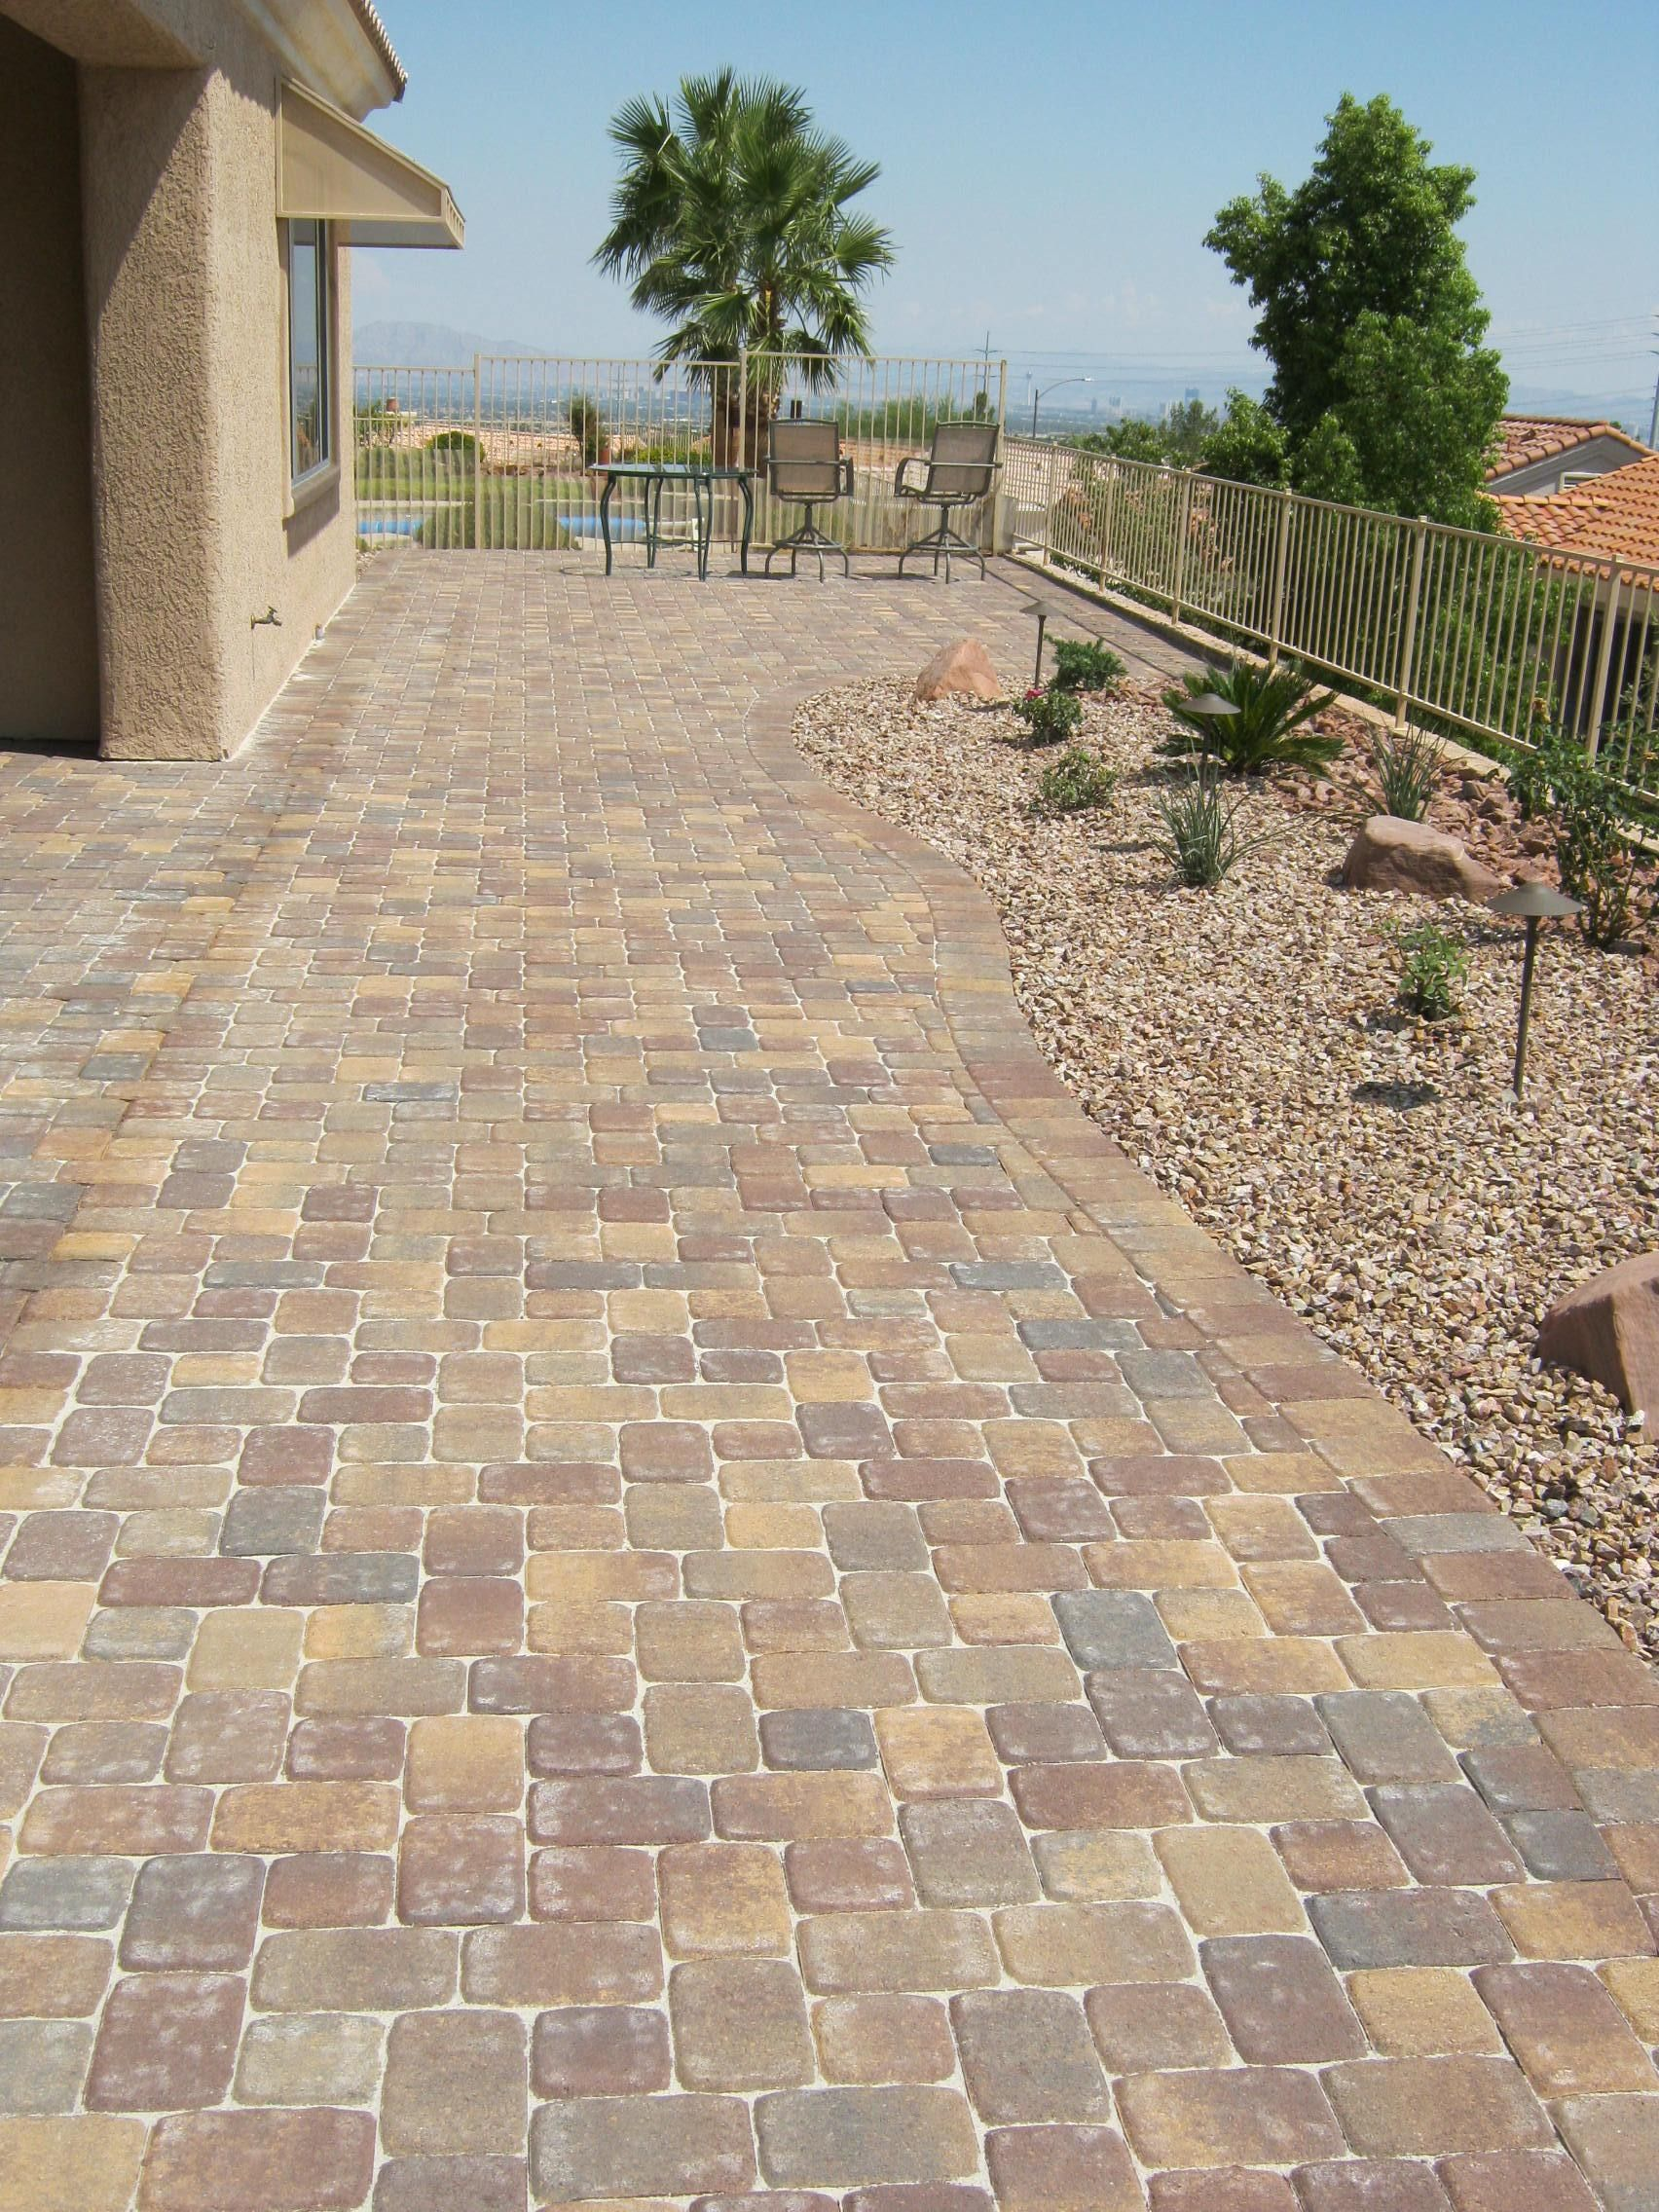 Superior Another Gorgeous #patio In #LasVegas | Plaza Sierra Blend #pavers | # Landscaping